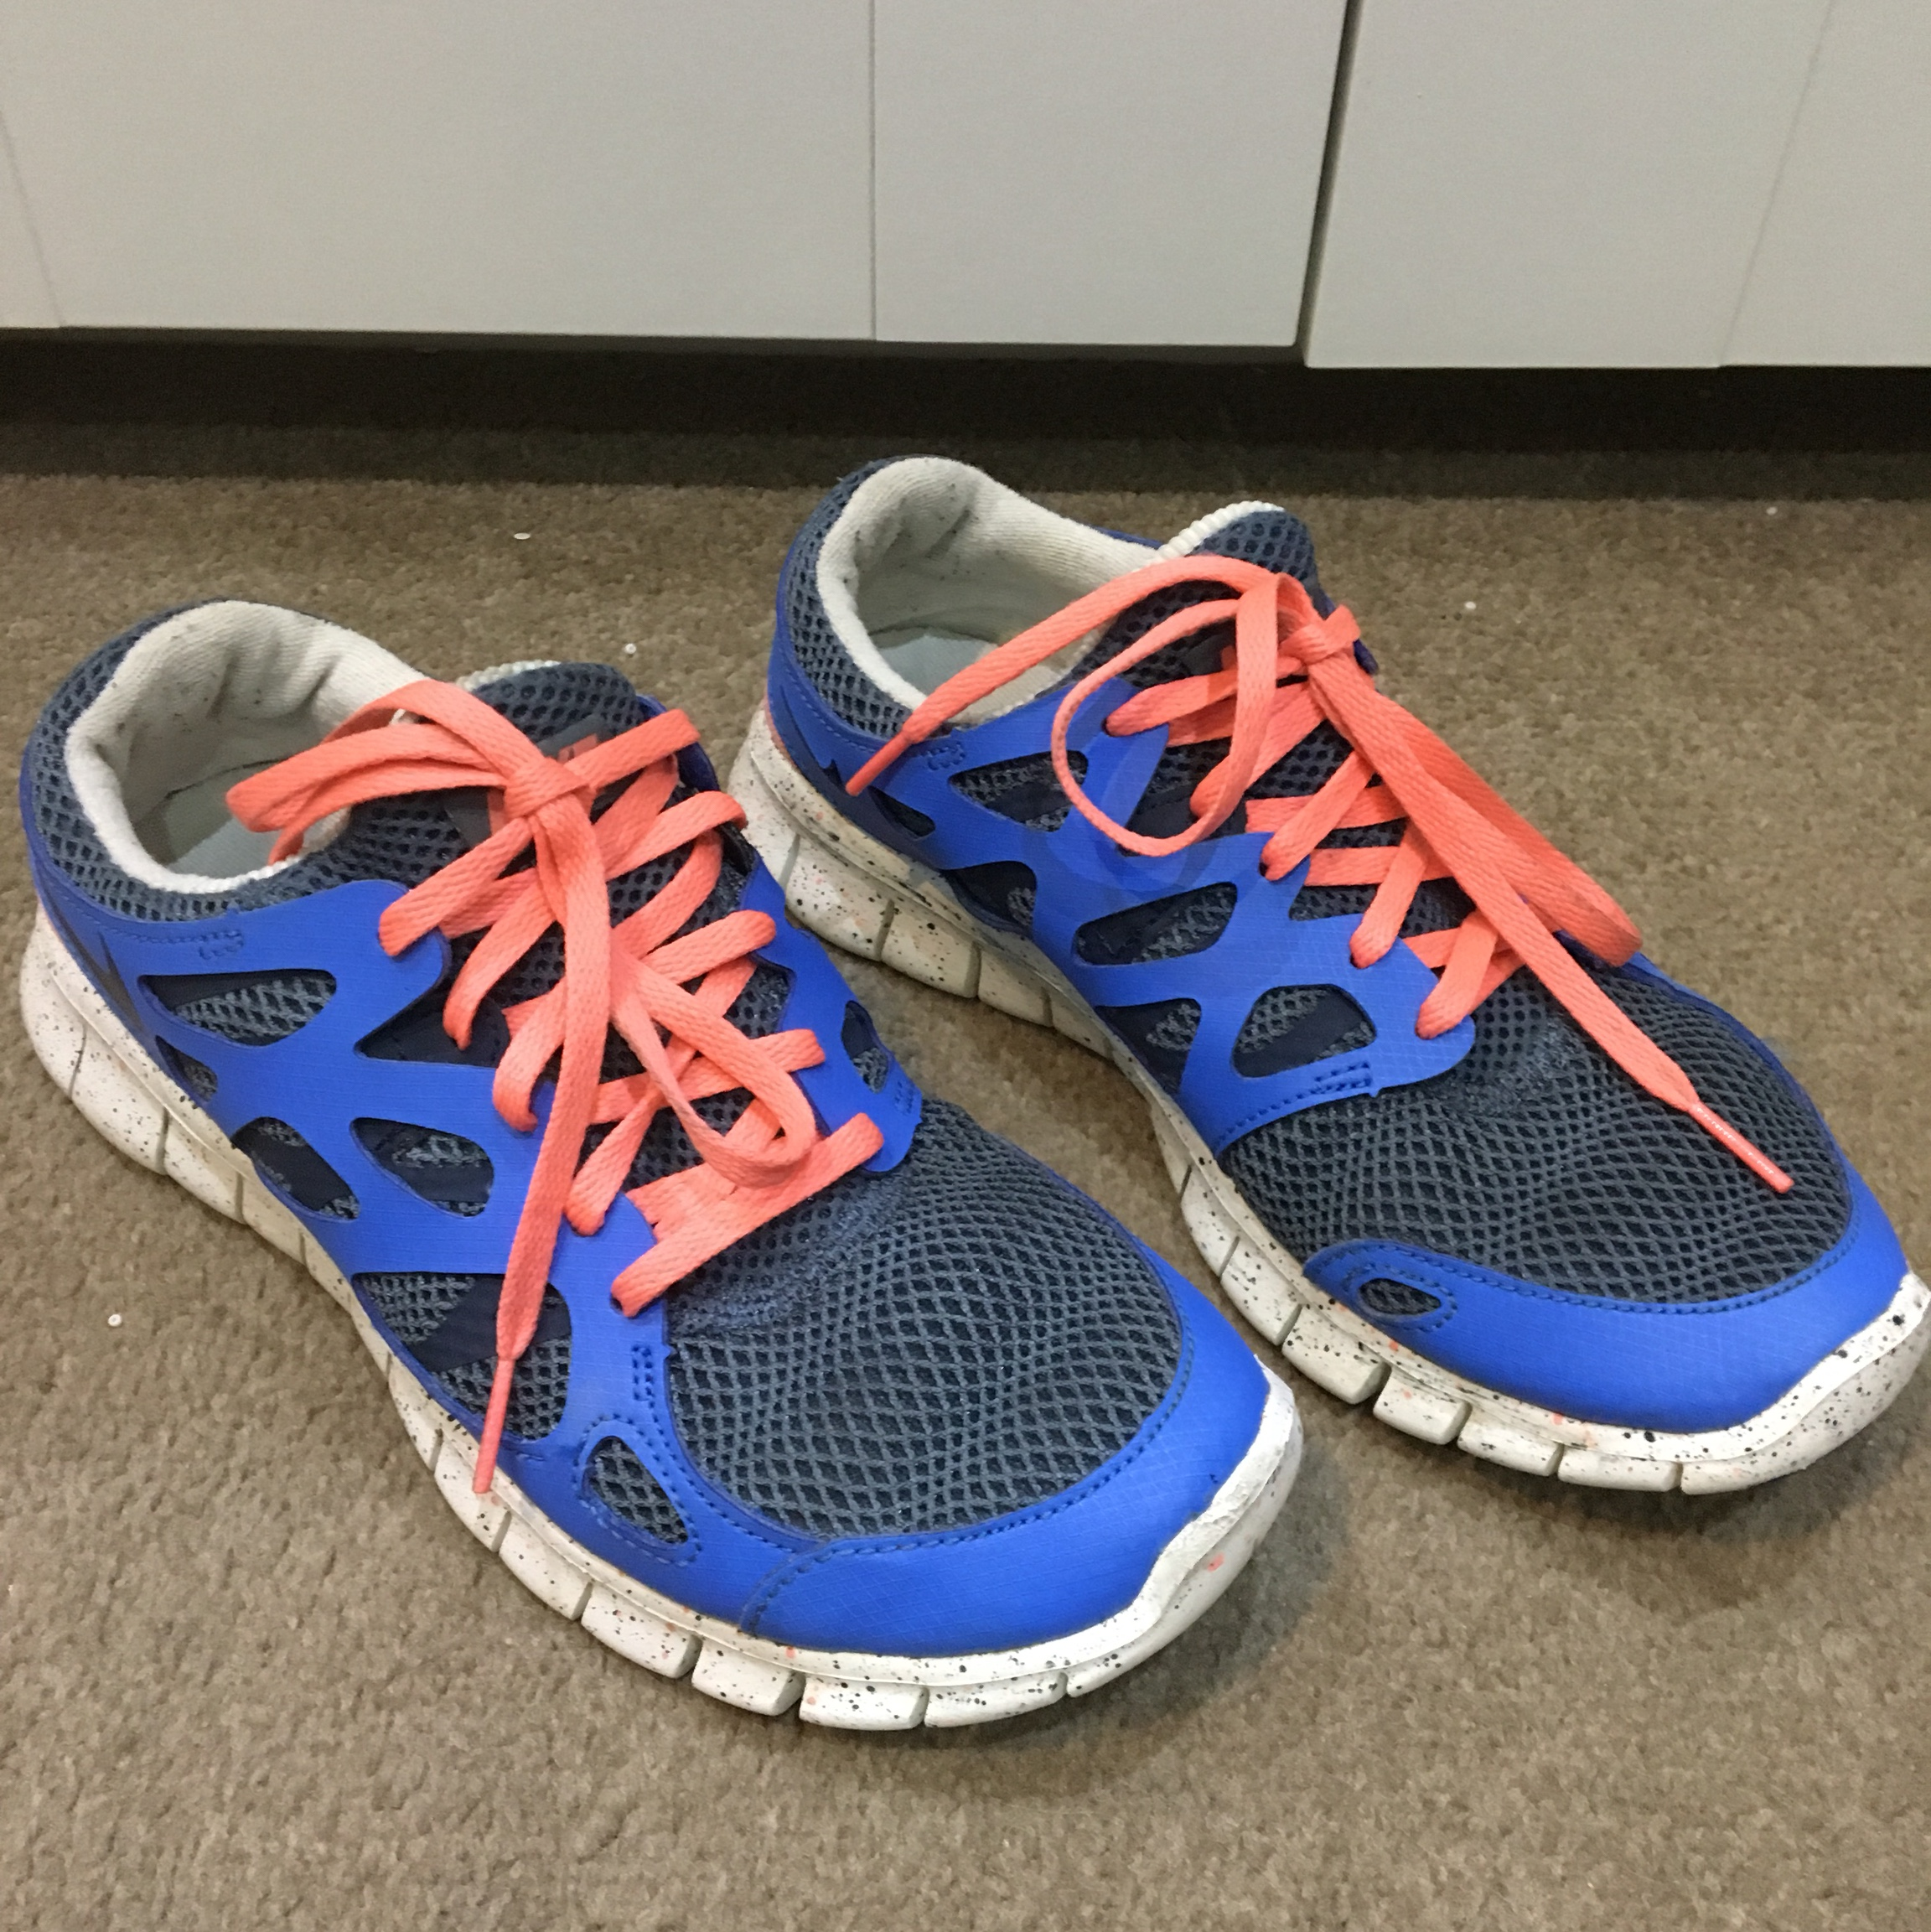 Nike running trainers Blue with neon